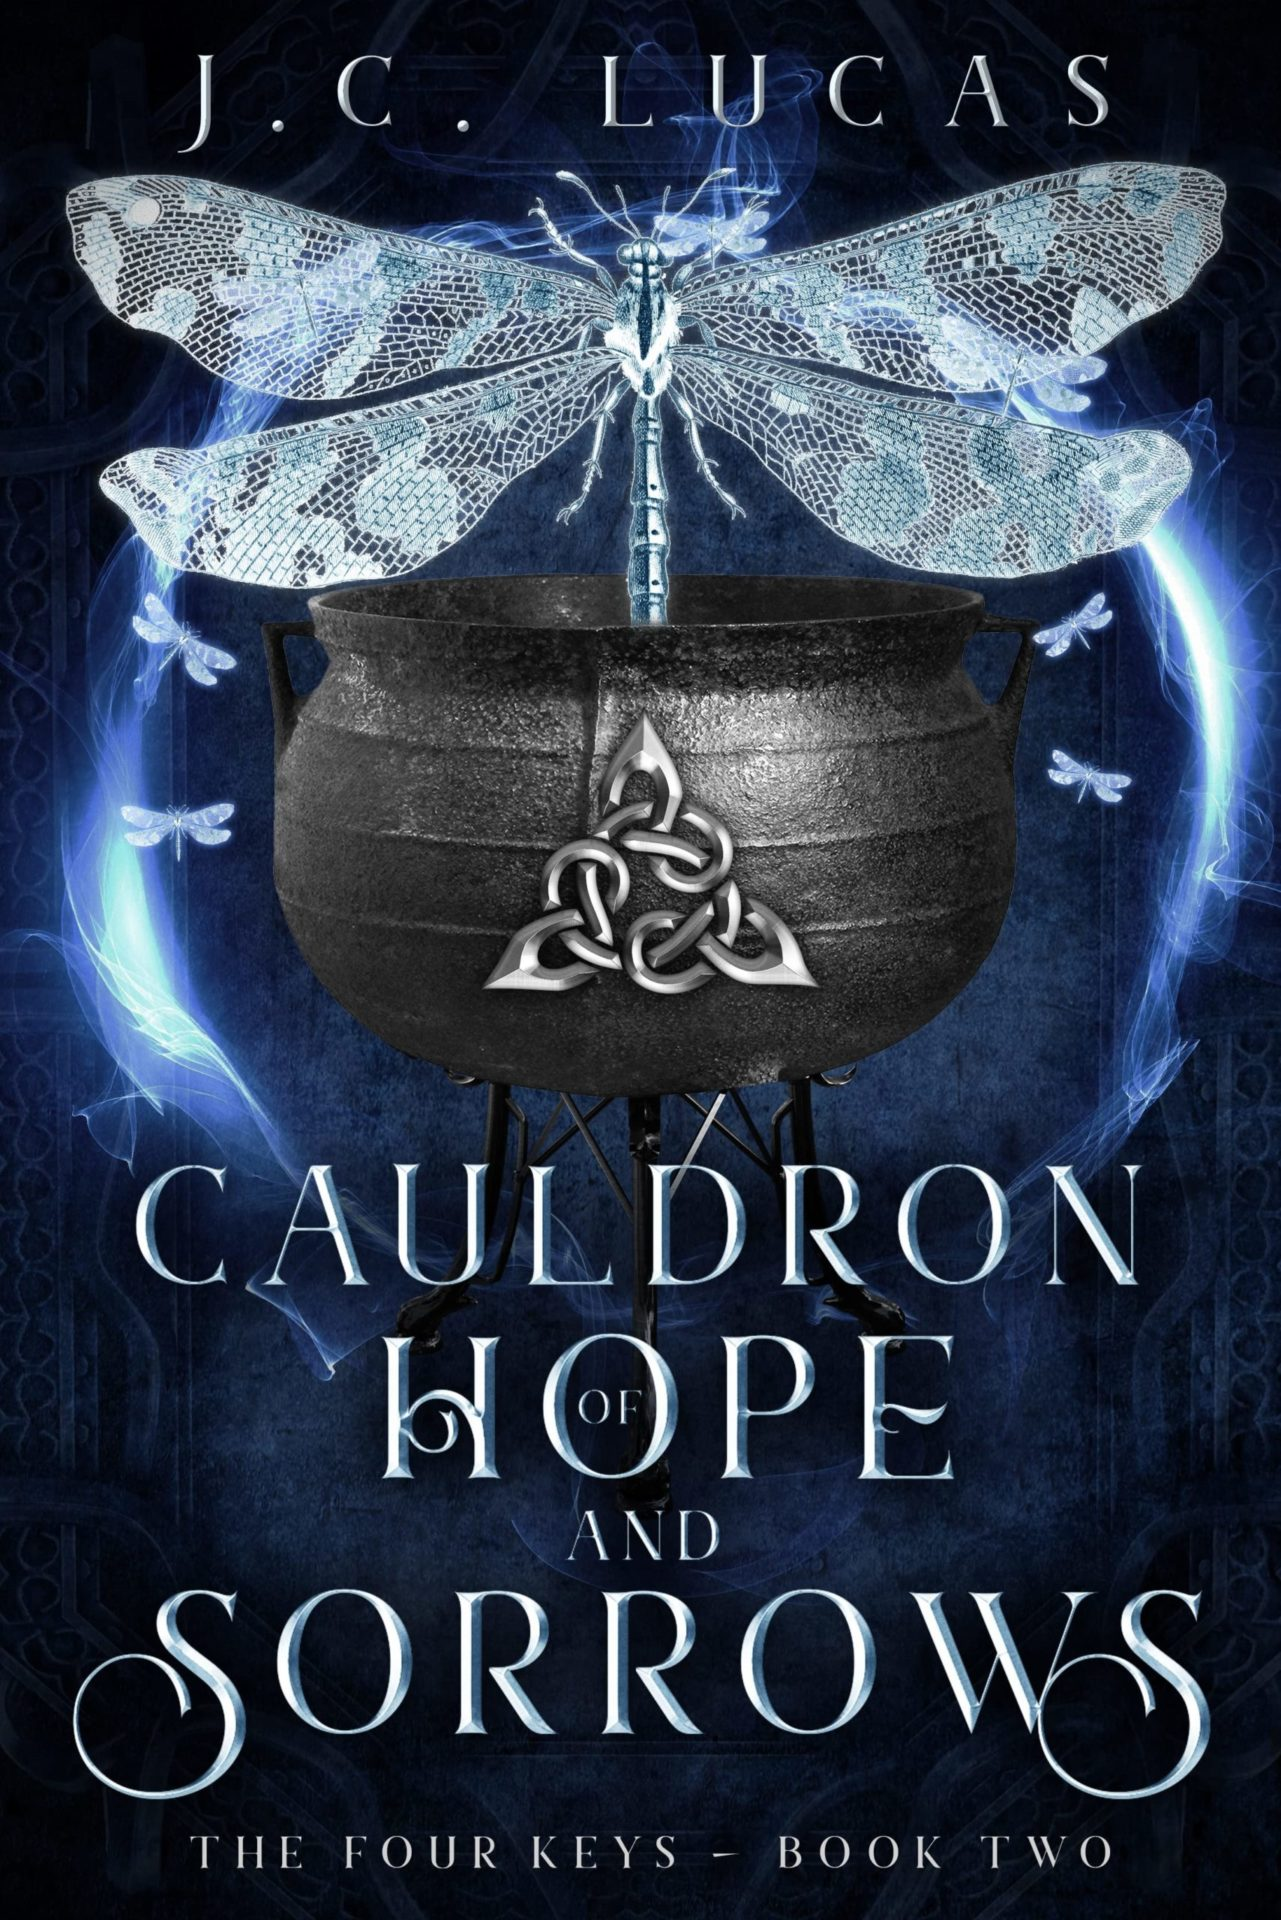 Cauldron of Hope and Sorrows (The Four Keys Libro 2) – J.C. Lucas